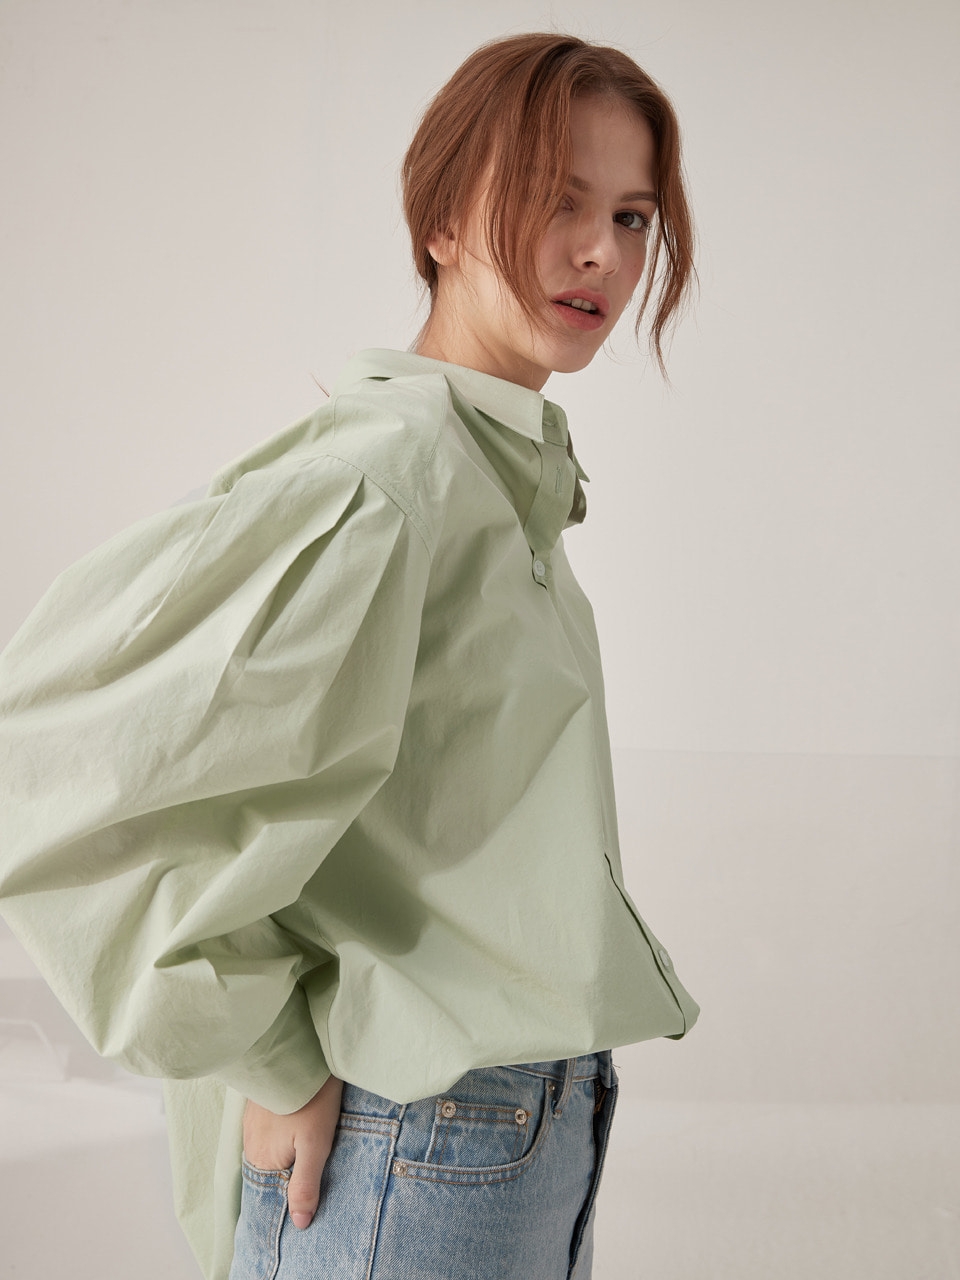 Volume oversized shirts - Mint